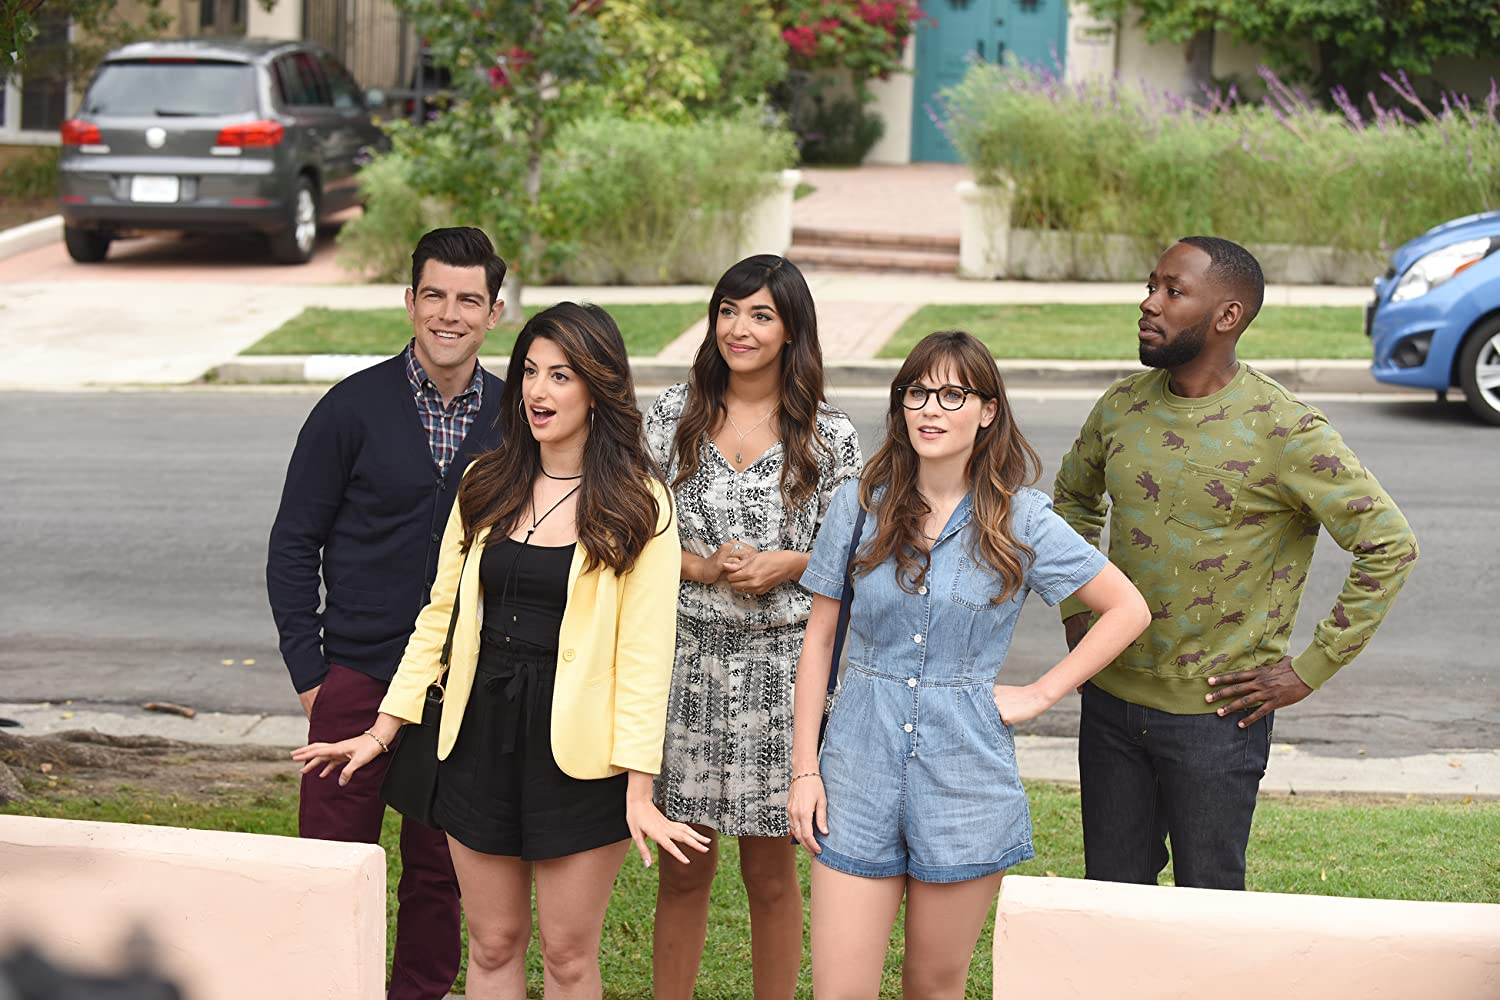 Zooey Deschanel, Max Greenfield, Hannah Simone, Lamorne Morris, and Ayden Mayeri in New Girl (2011)